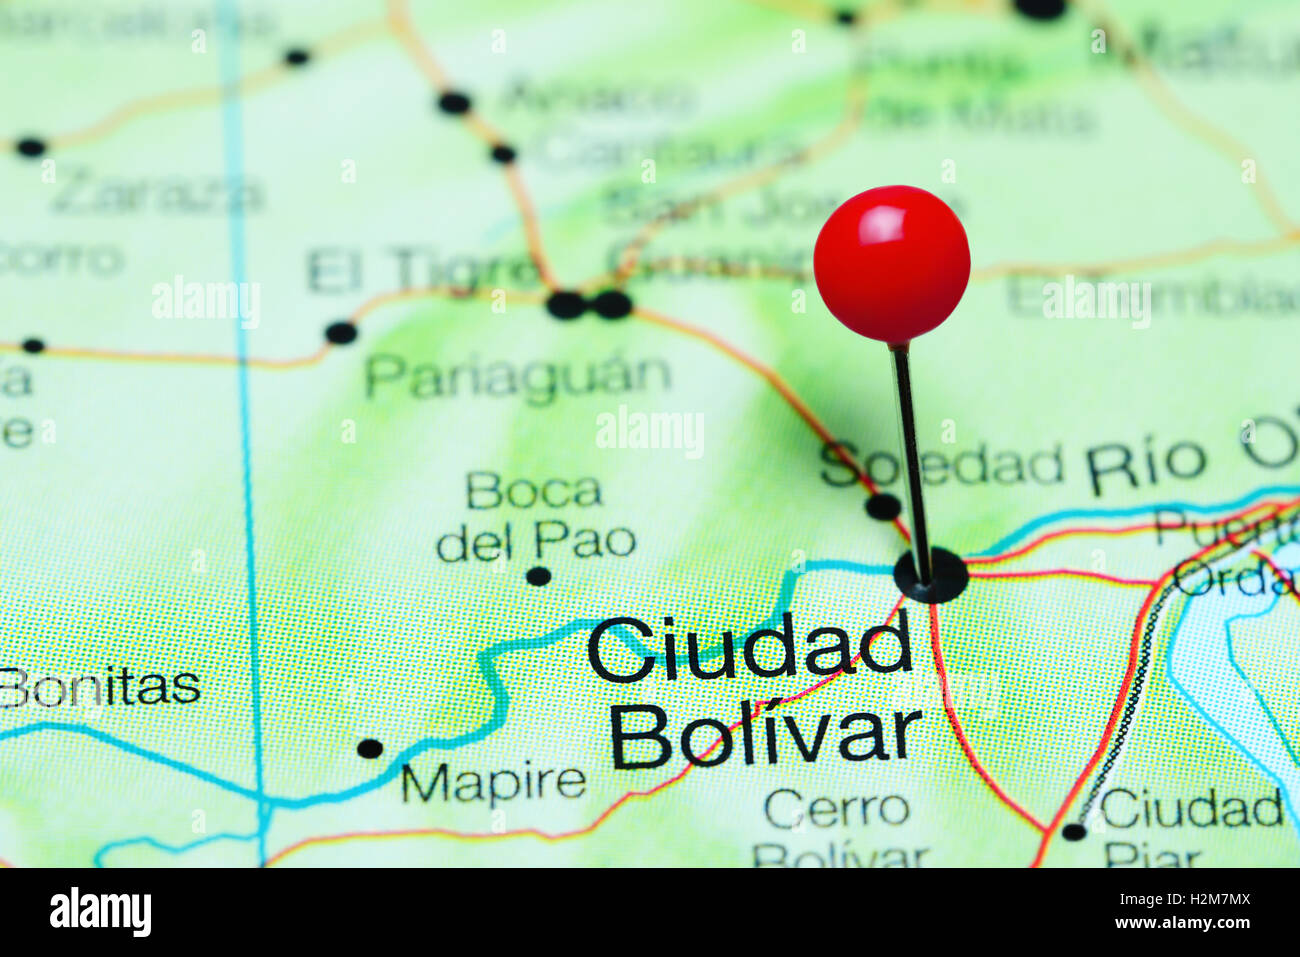 Ciudad Bolivar pinned on a map of Venezuela Stock Photo Royalty